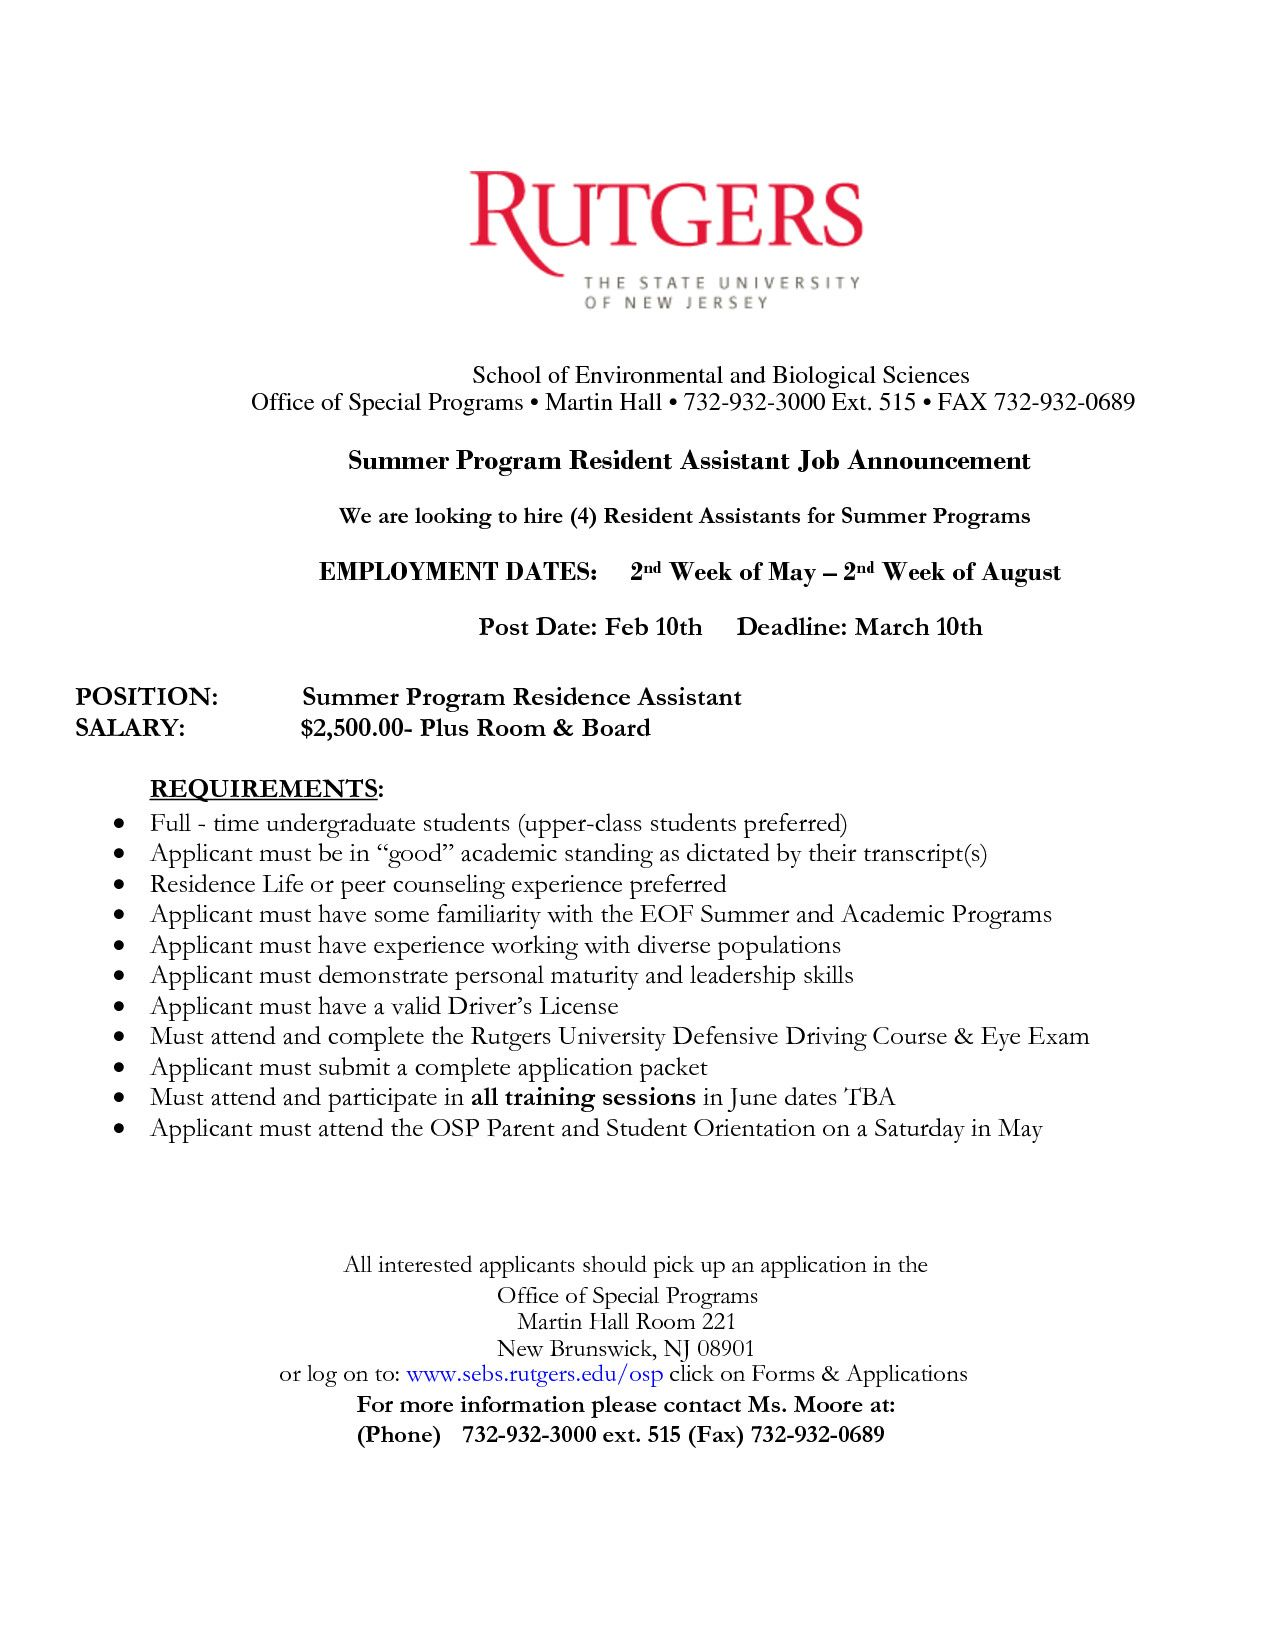 Resident Assistant Resume Examples Inspirational Resident Assistant Resume Resume Template